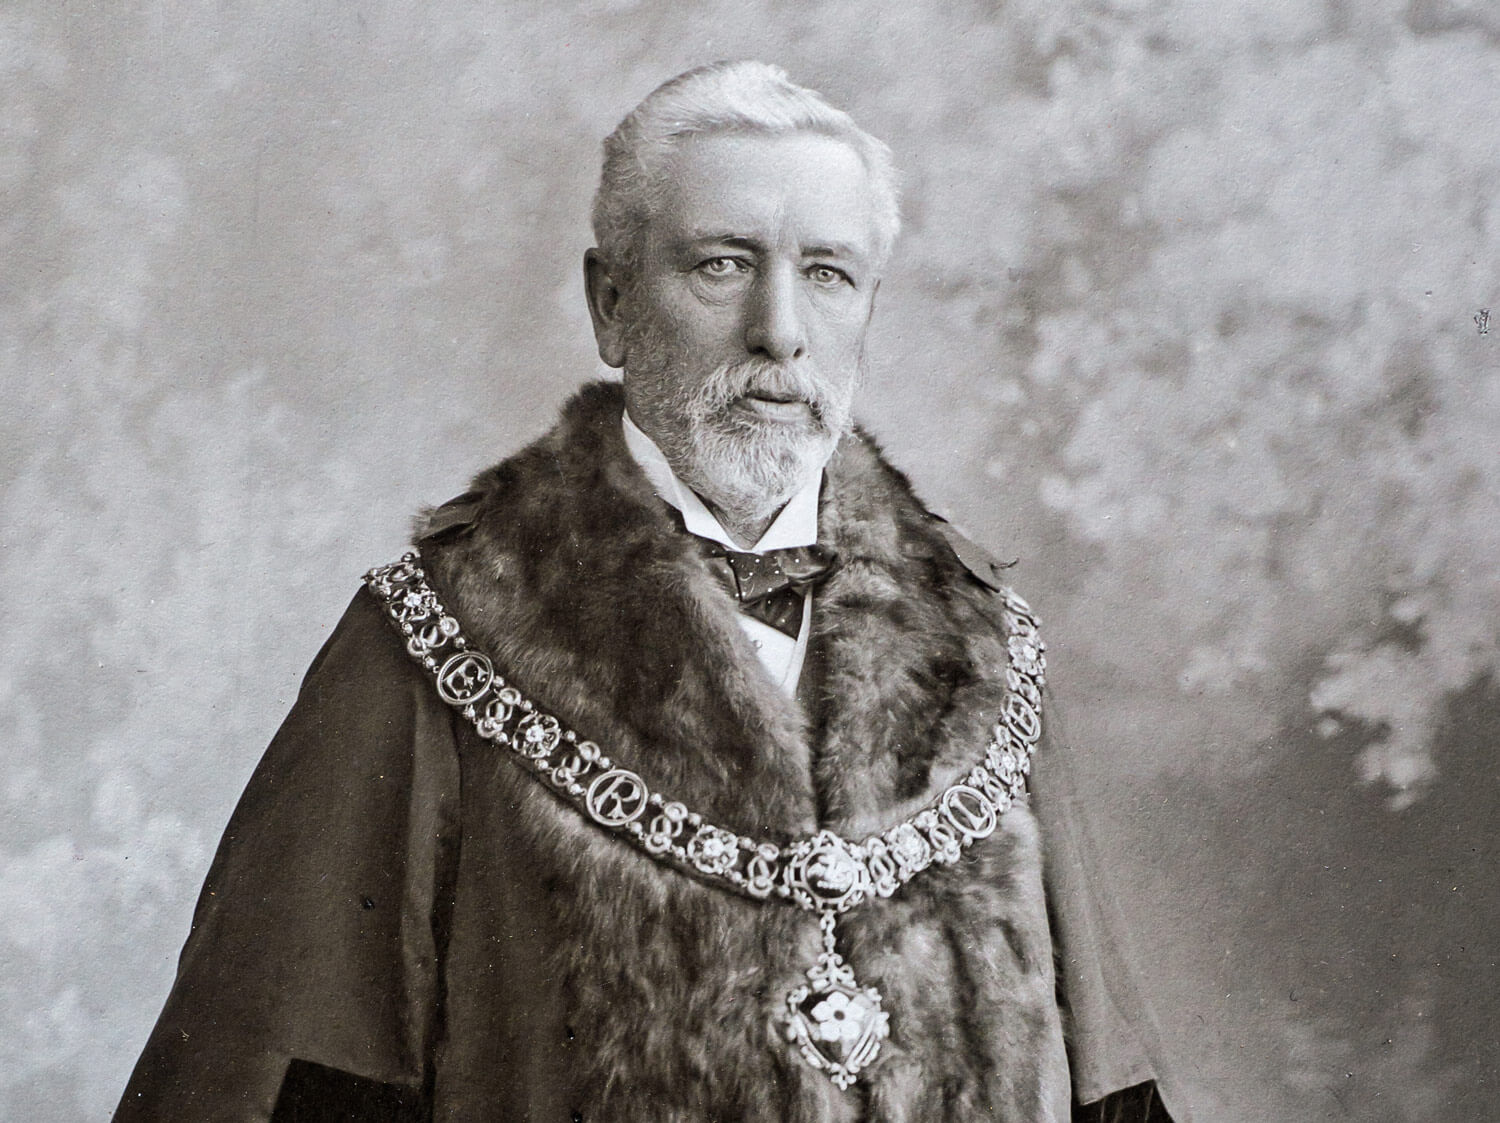 Edward Wood as Mayor in 1888 -